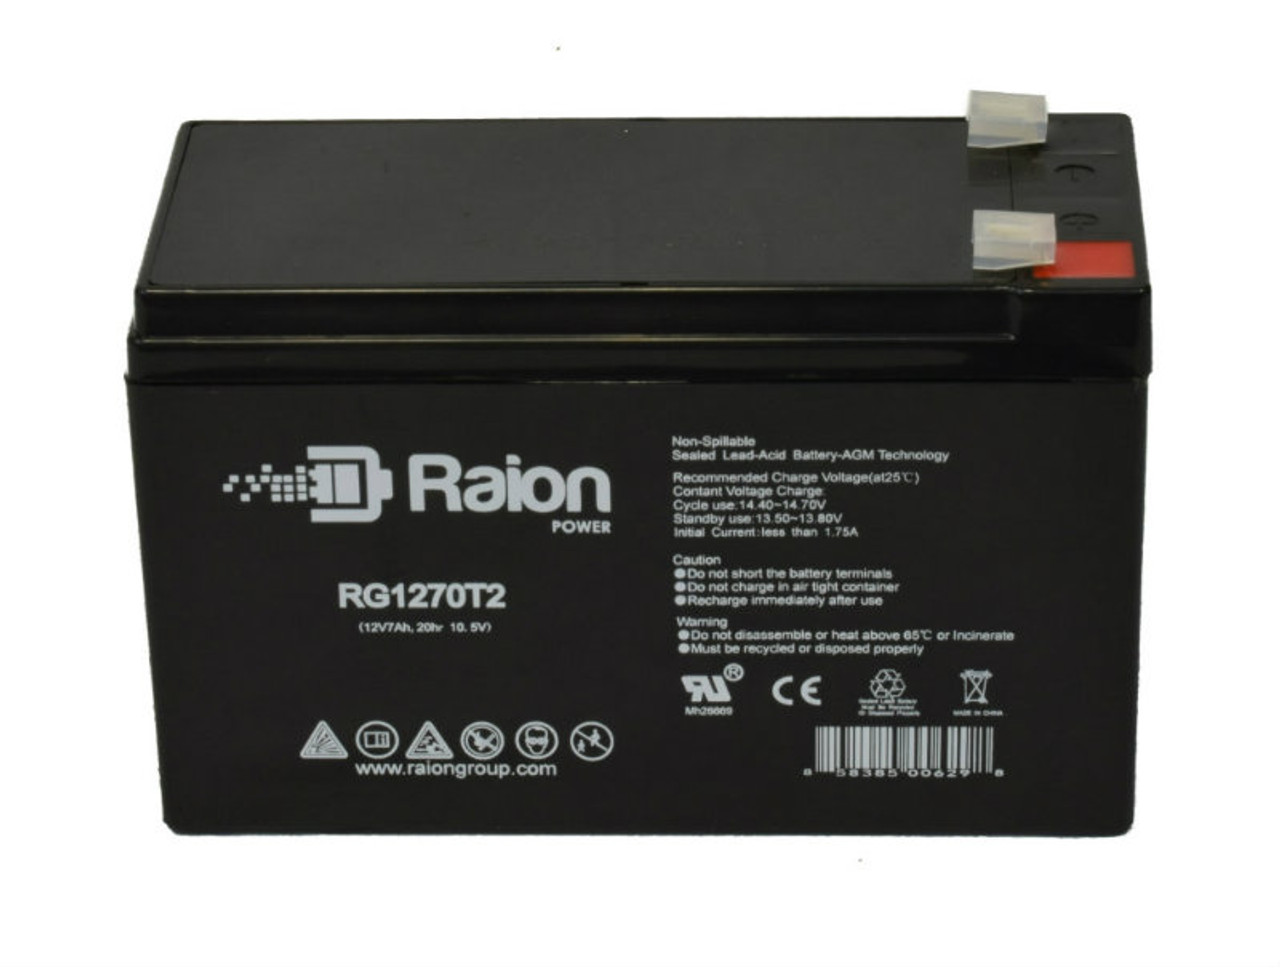 Raion Power 12V 7Ah SLA Battery With T1 Terminals For Long Way LW-6FM7D